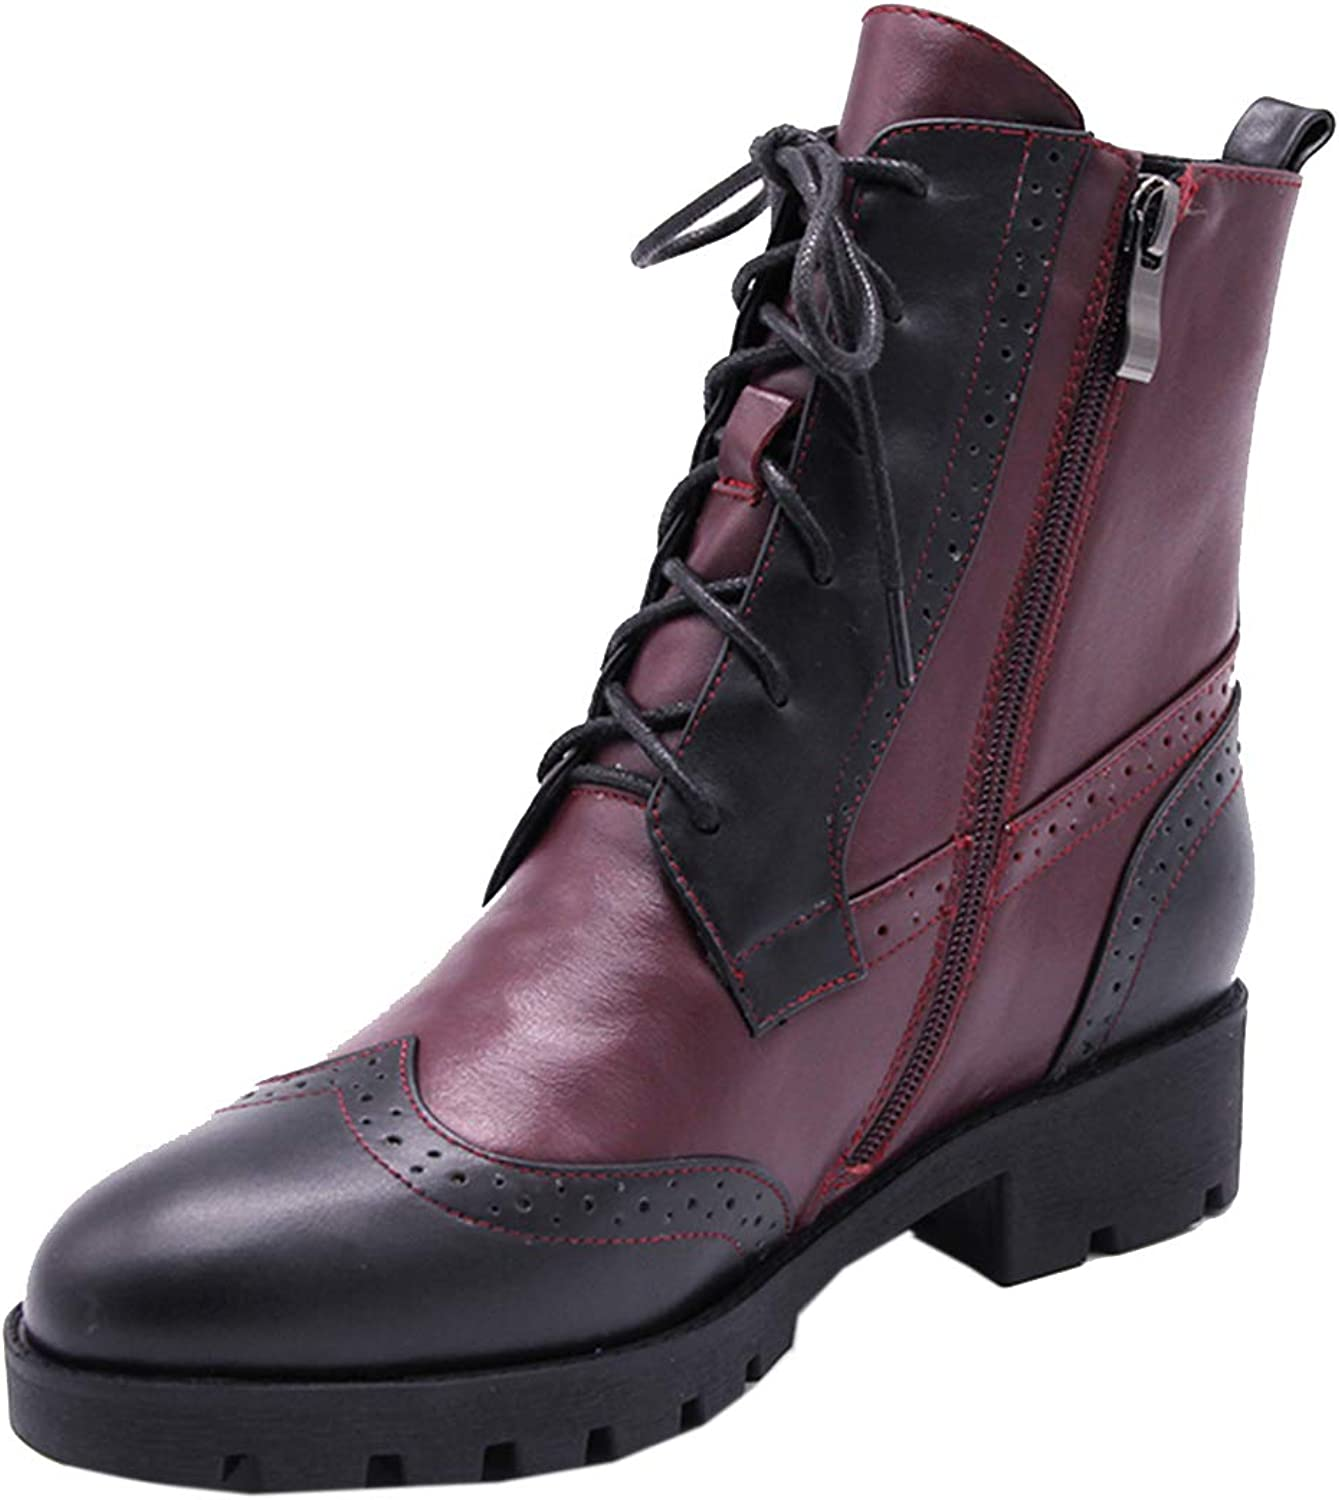 Vitalo Womens Lace Up Flat Ankle Boots Zip Up Autumn Winter Booties